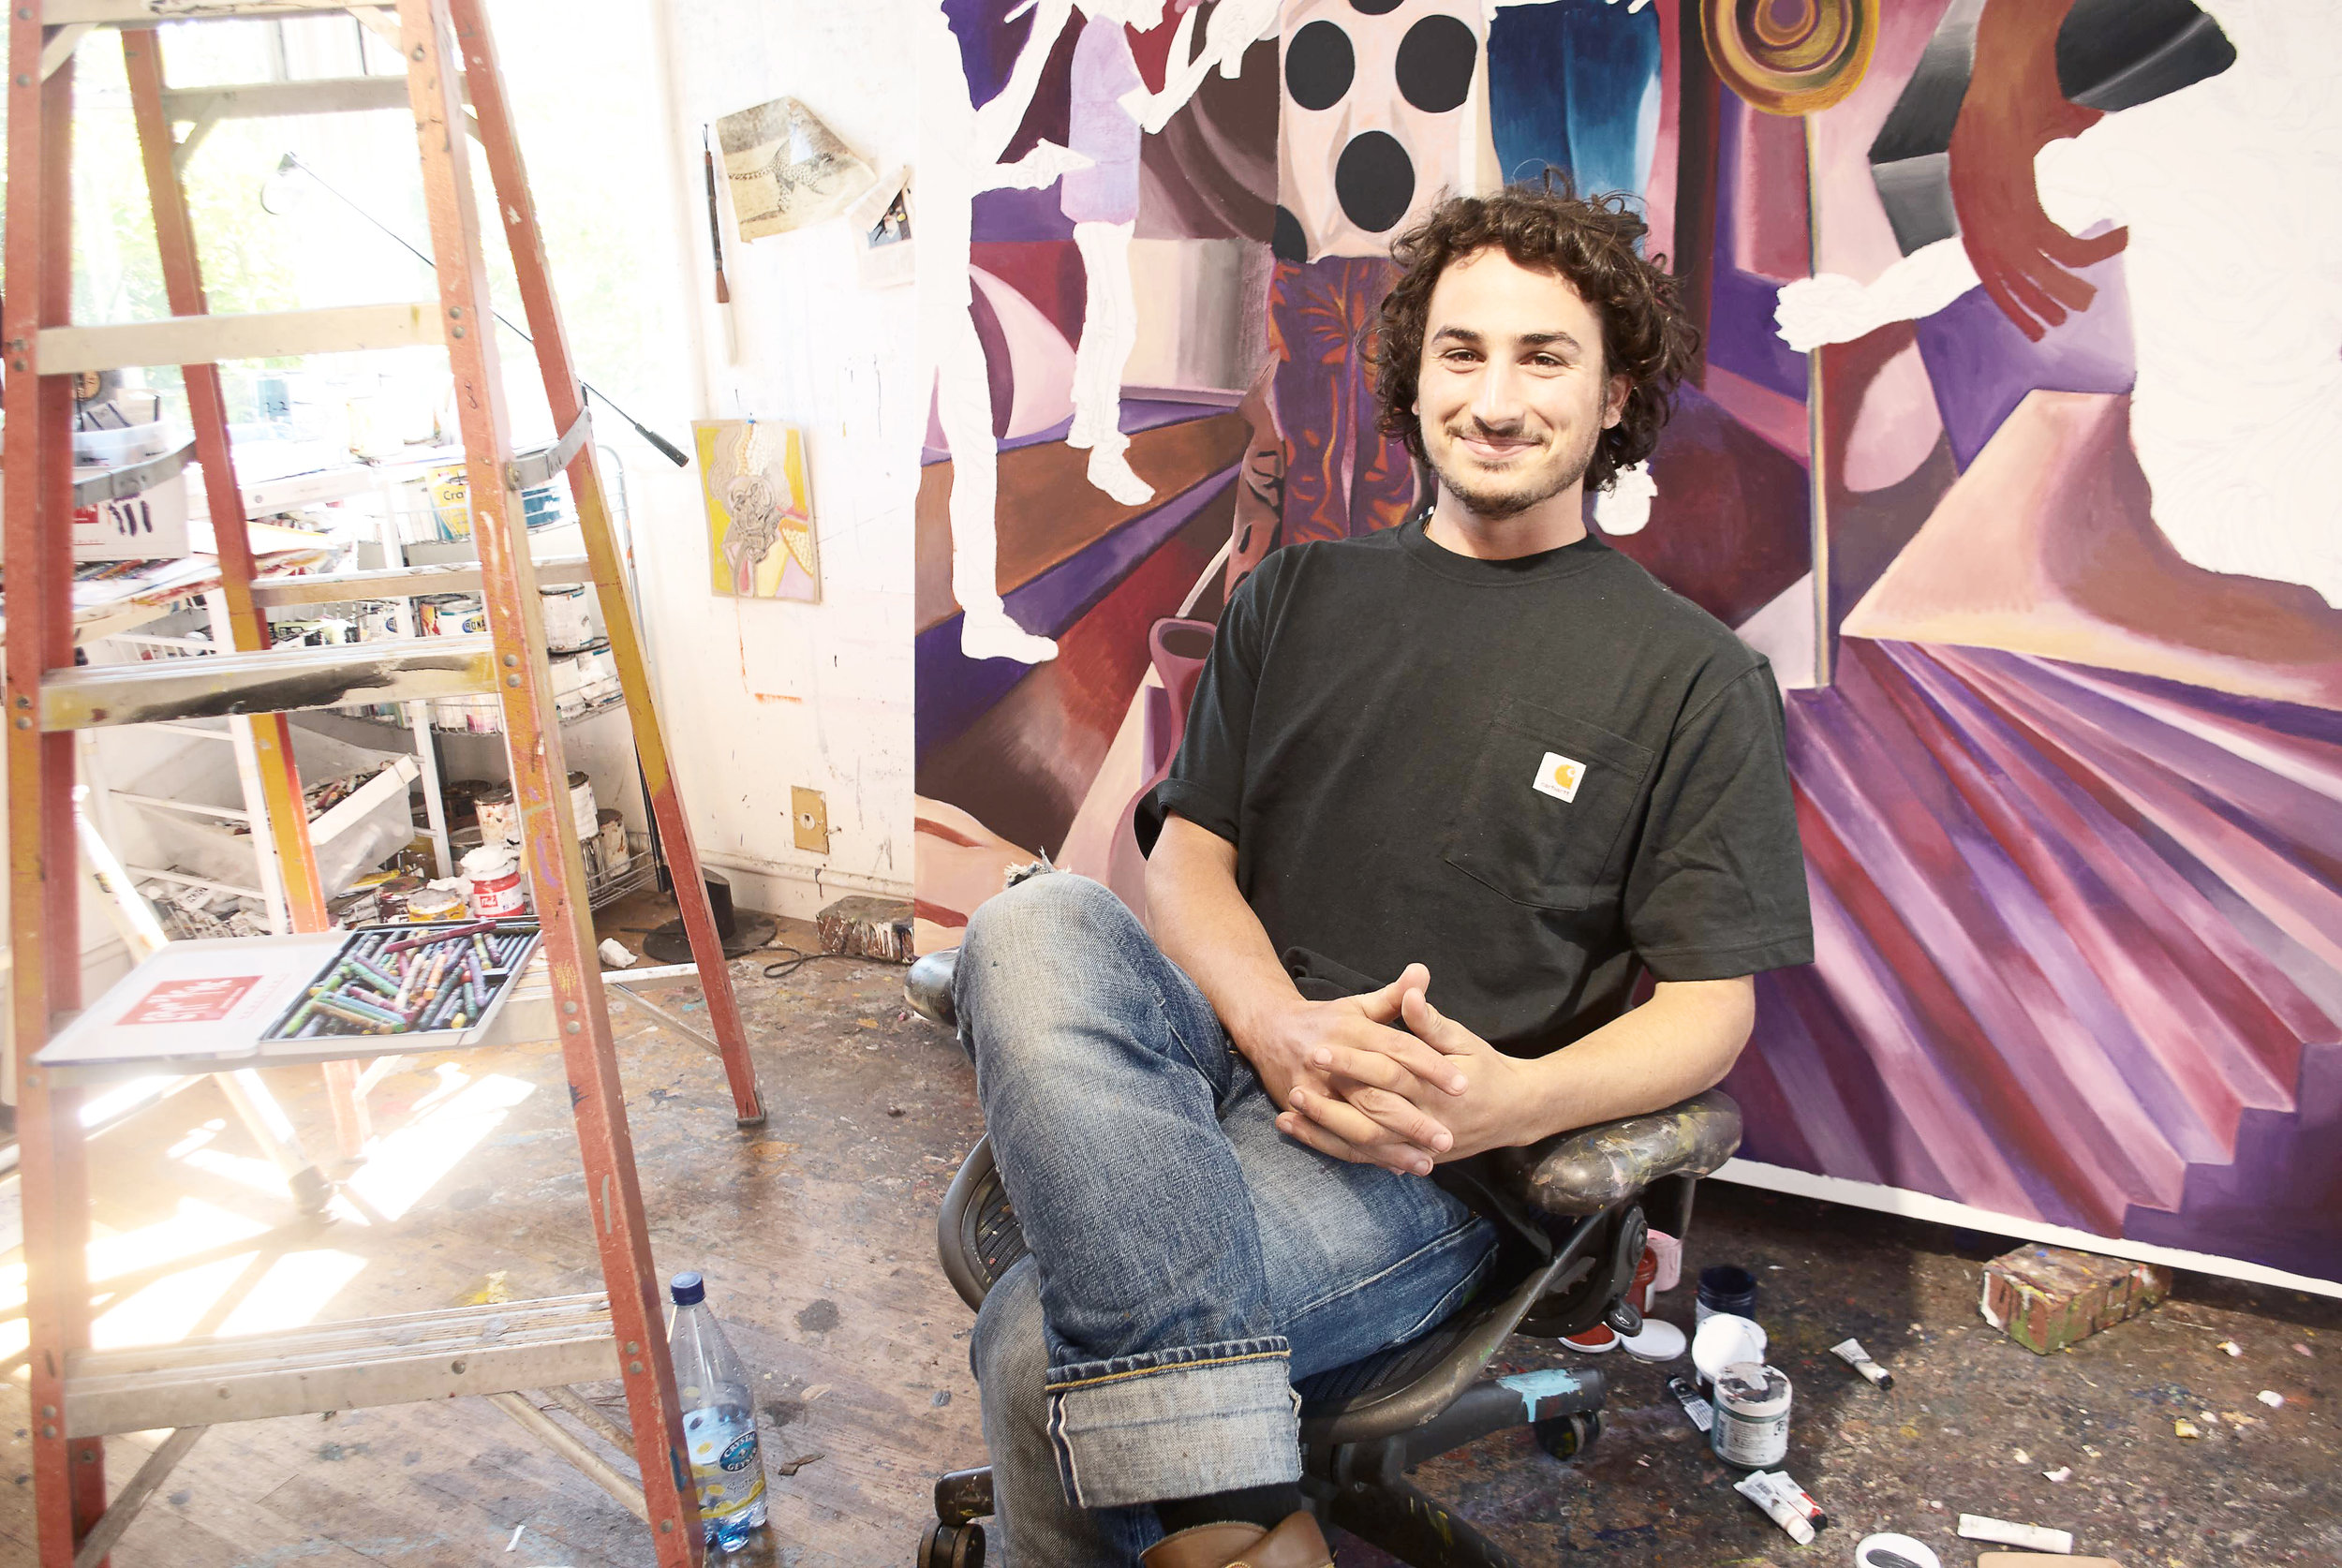 Photography by Anthony Rogers — Zio Zeigler in his artist home.